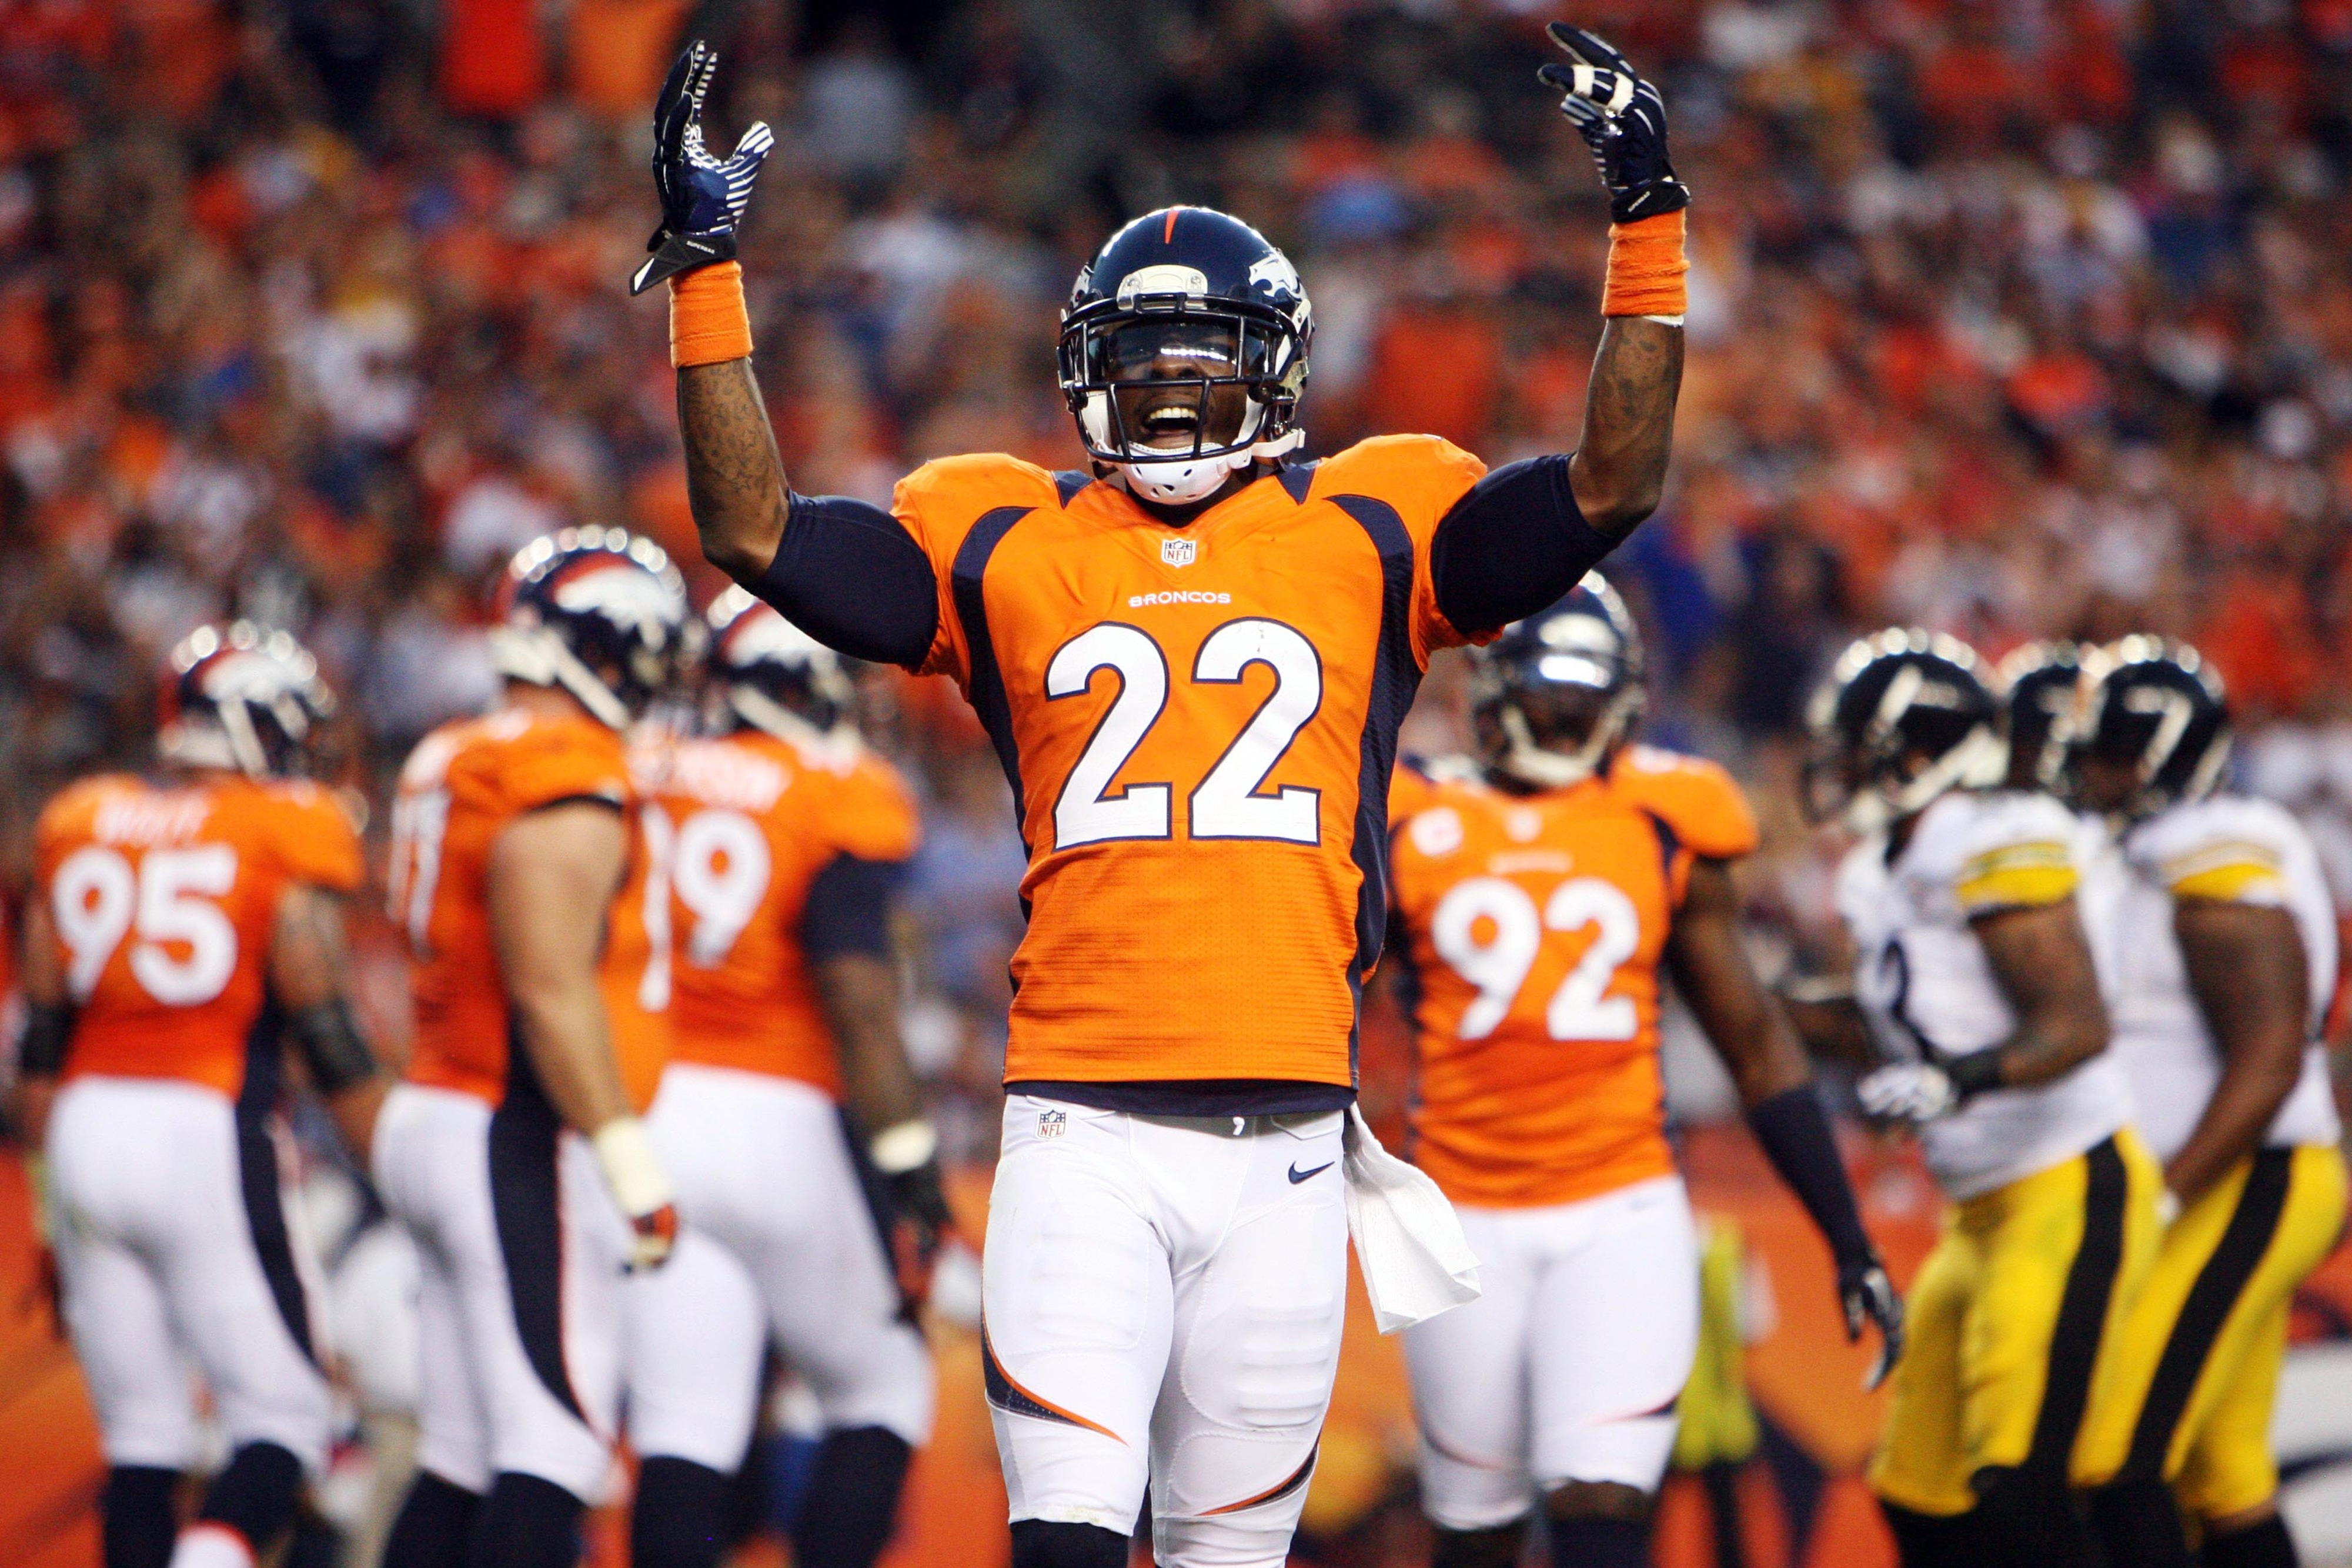 September 9, 2012; Denver, CO, USA; Denver Broncos cornerback Tracy Porter (22) celebrates during the first half against the Pittsburgh Steelers at Sports Authority Field at Mile High.  Mandatory Credit: Chris Humphreys-US PRESSWIRE